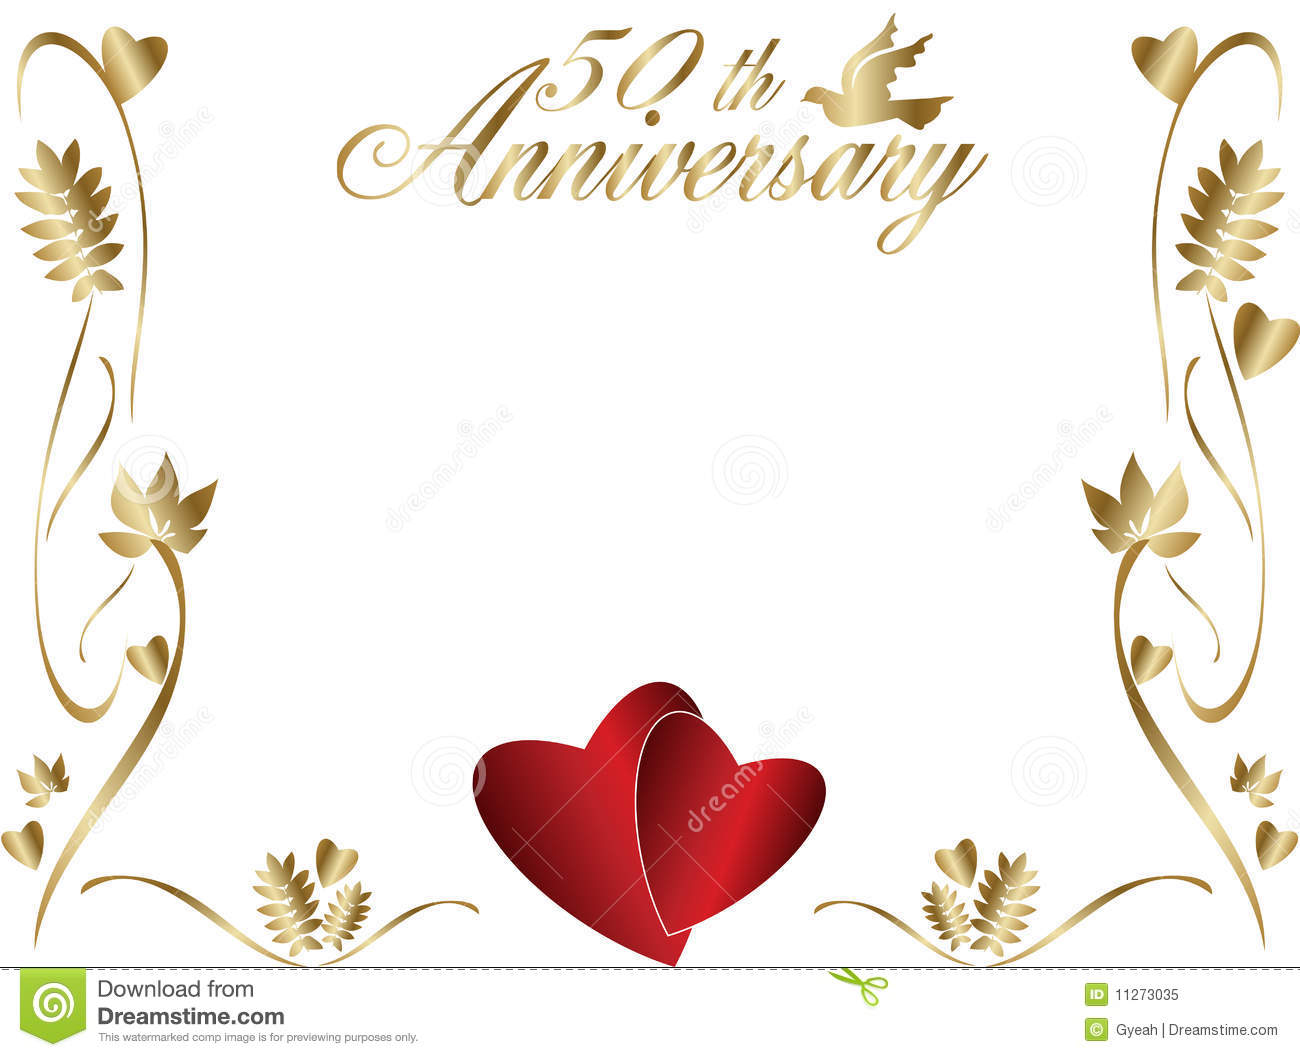 50th anniversary border dove hearts wedding